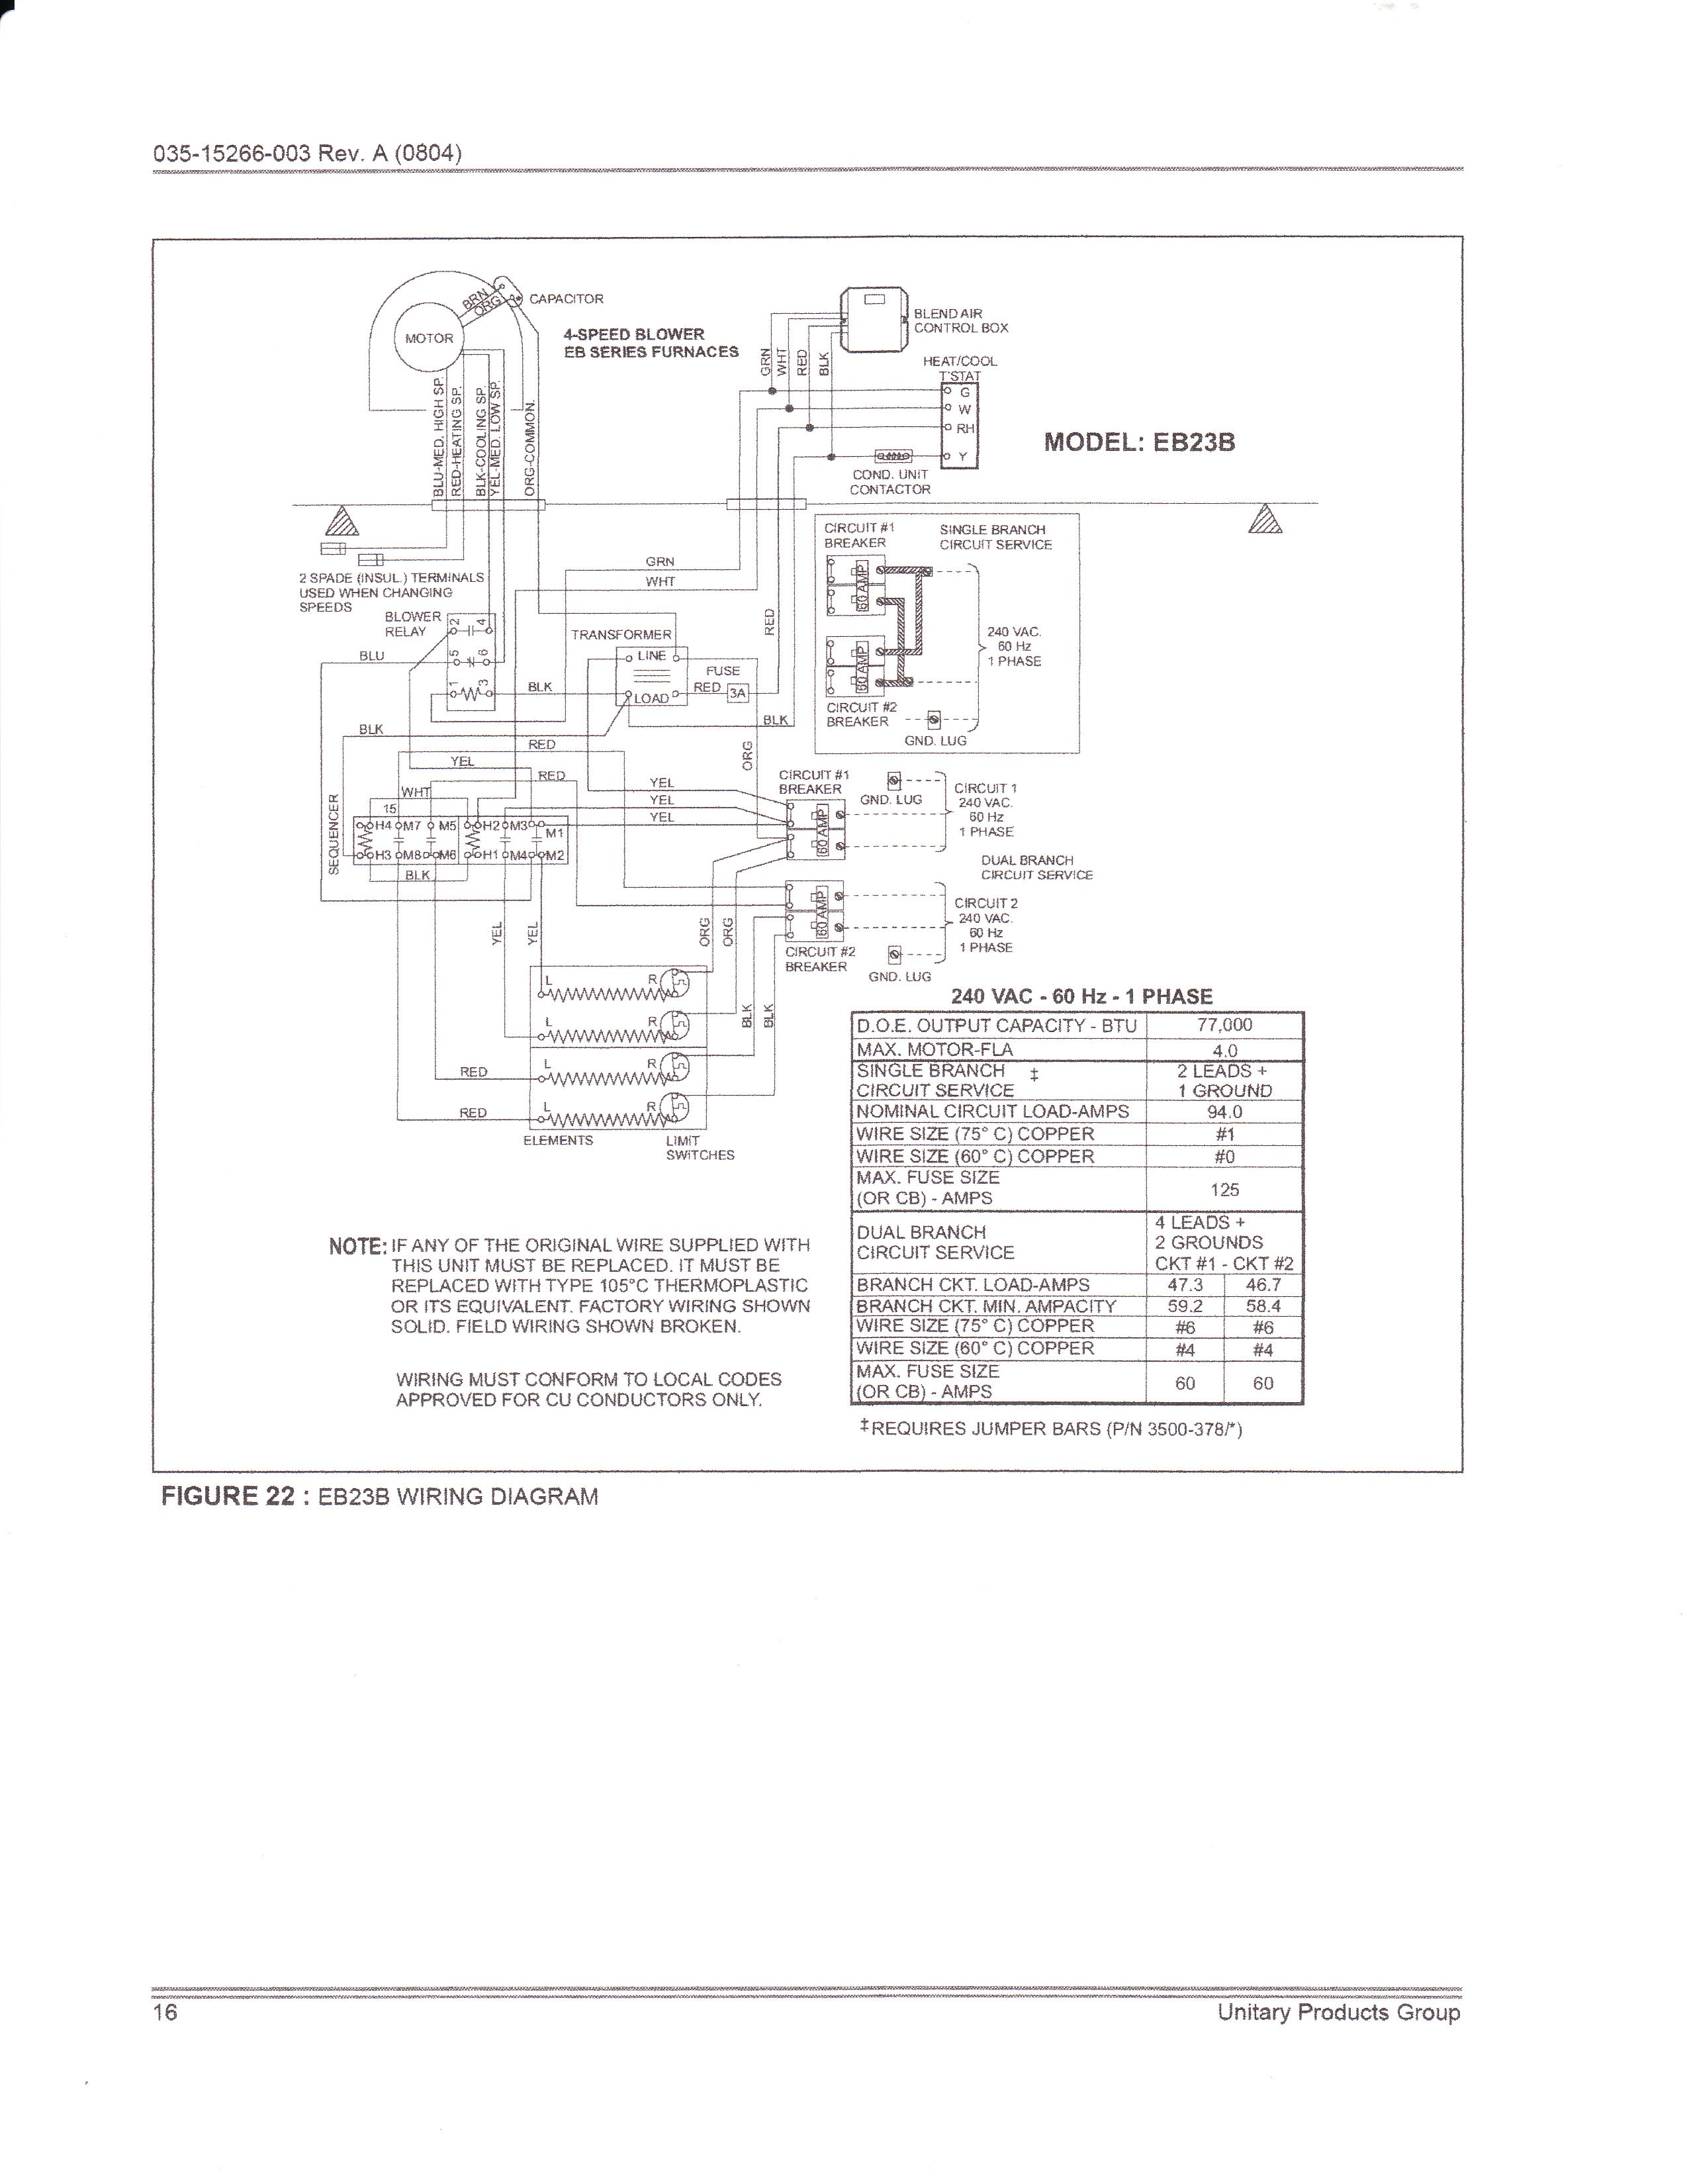 mobile home wiring diagram evcon wiring diagram wiring diagram schematics mobile home wiring diagram evcon wiring diagram wiring diagram